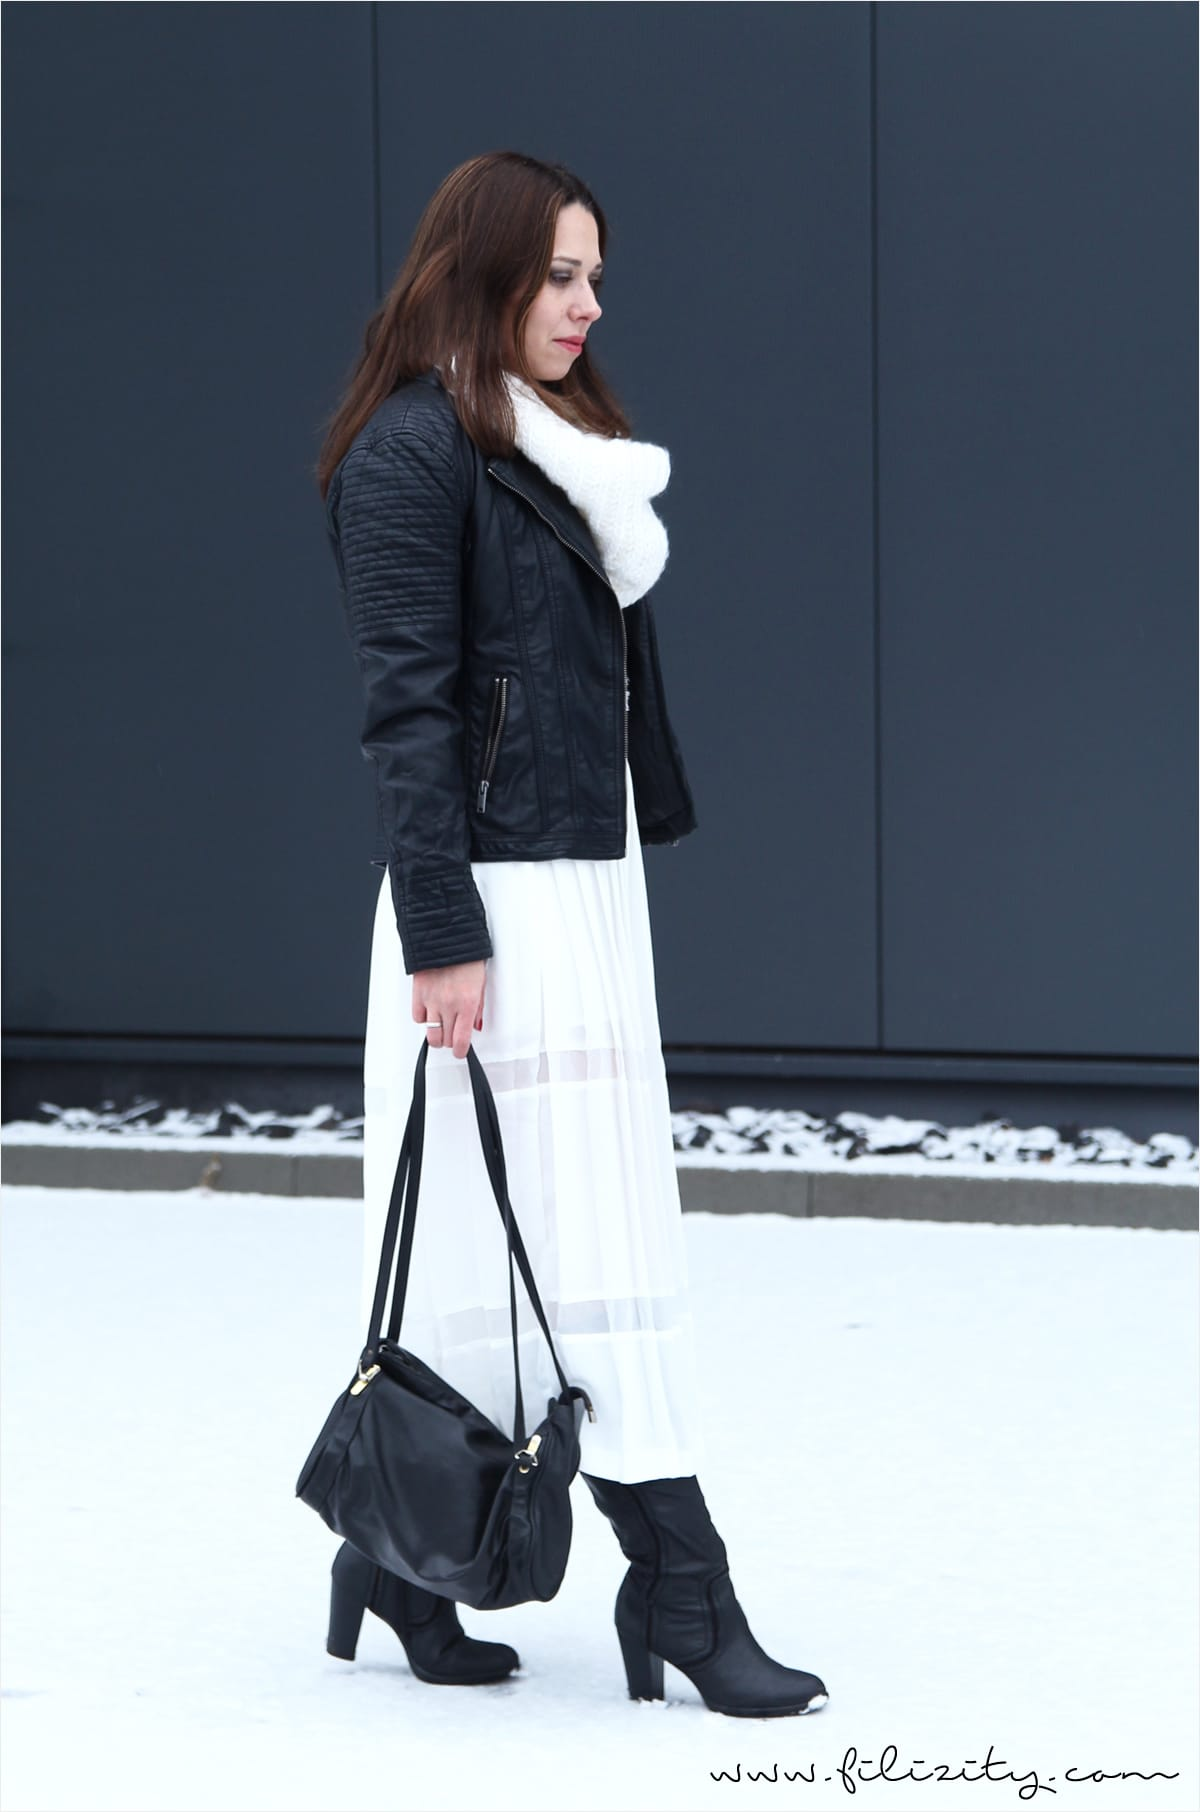 Culotte im Winter: Styling-Tipps